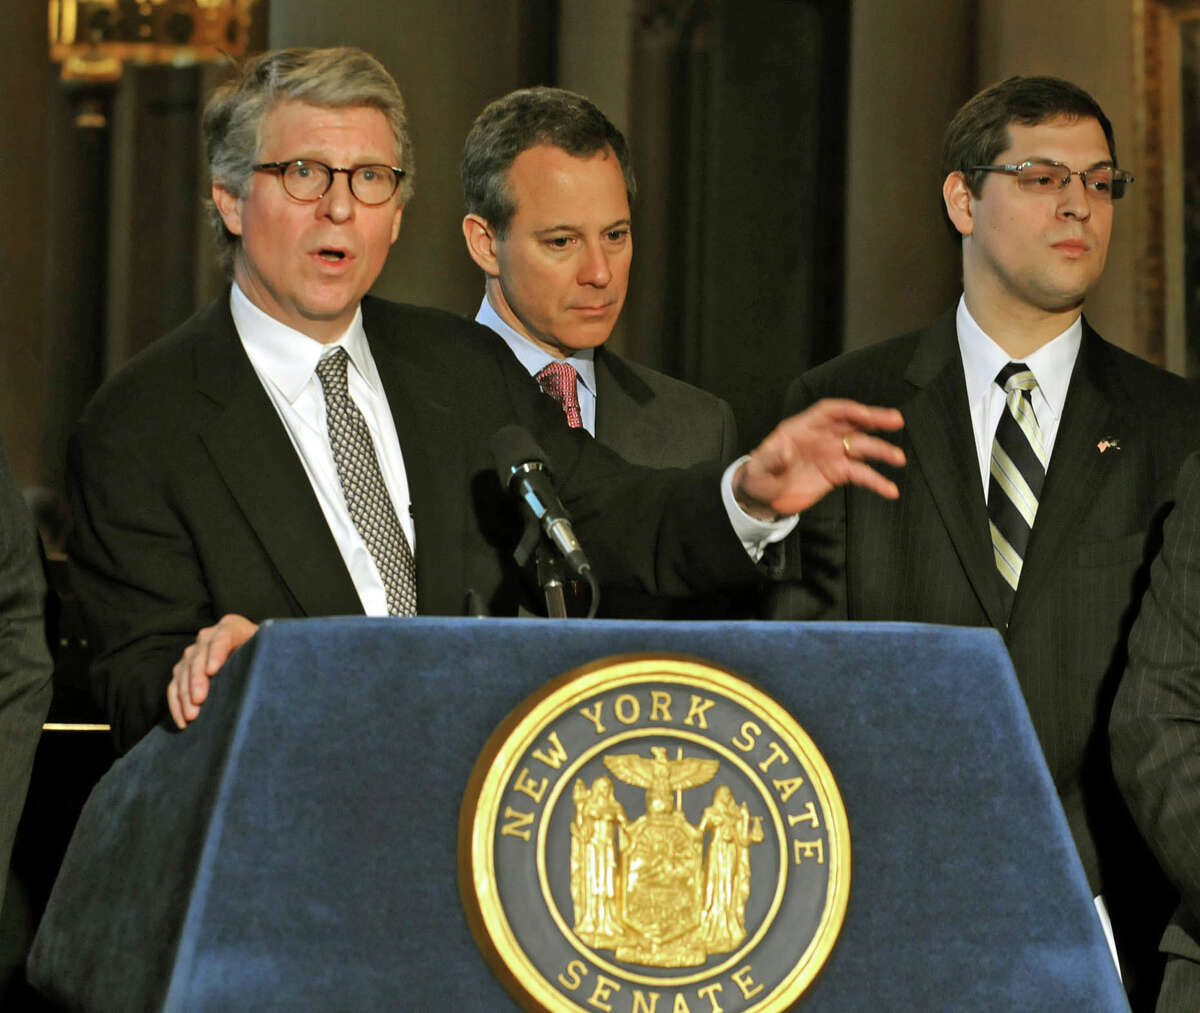 From left, Manhattan District Attorney Cyrus R. Vance, Jr. speaks during a press conference at the Capitol in Albany, NY on May 4, 2010. State Senator Eric Schneiderman and Assembly Member Micah Kellner listen in the background. For announcement of major reforms to combat public corruption.